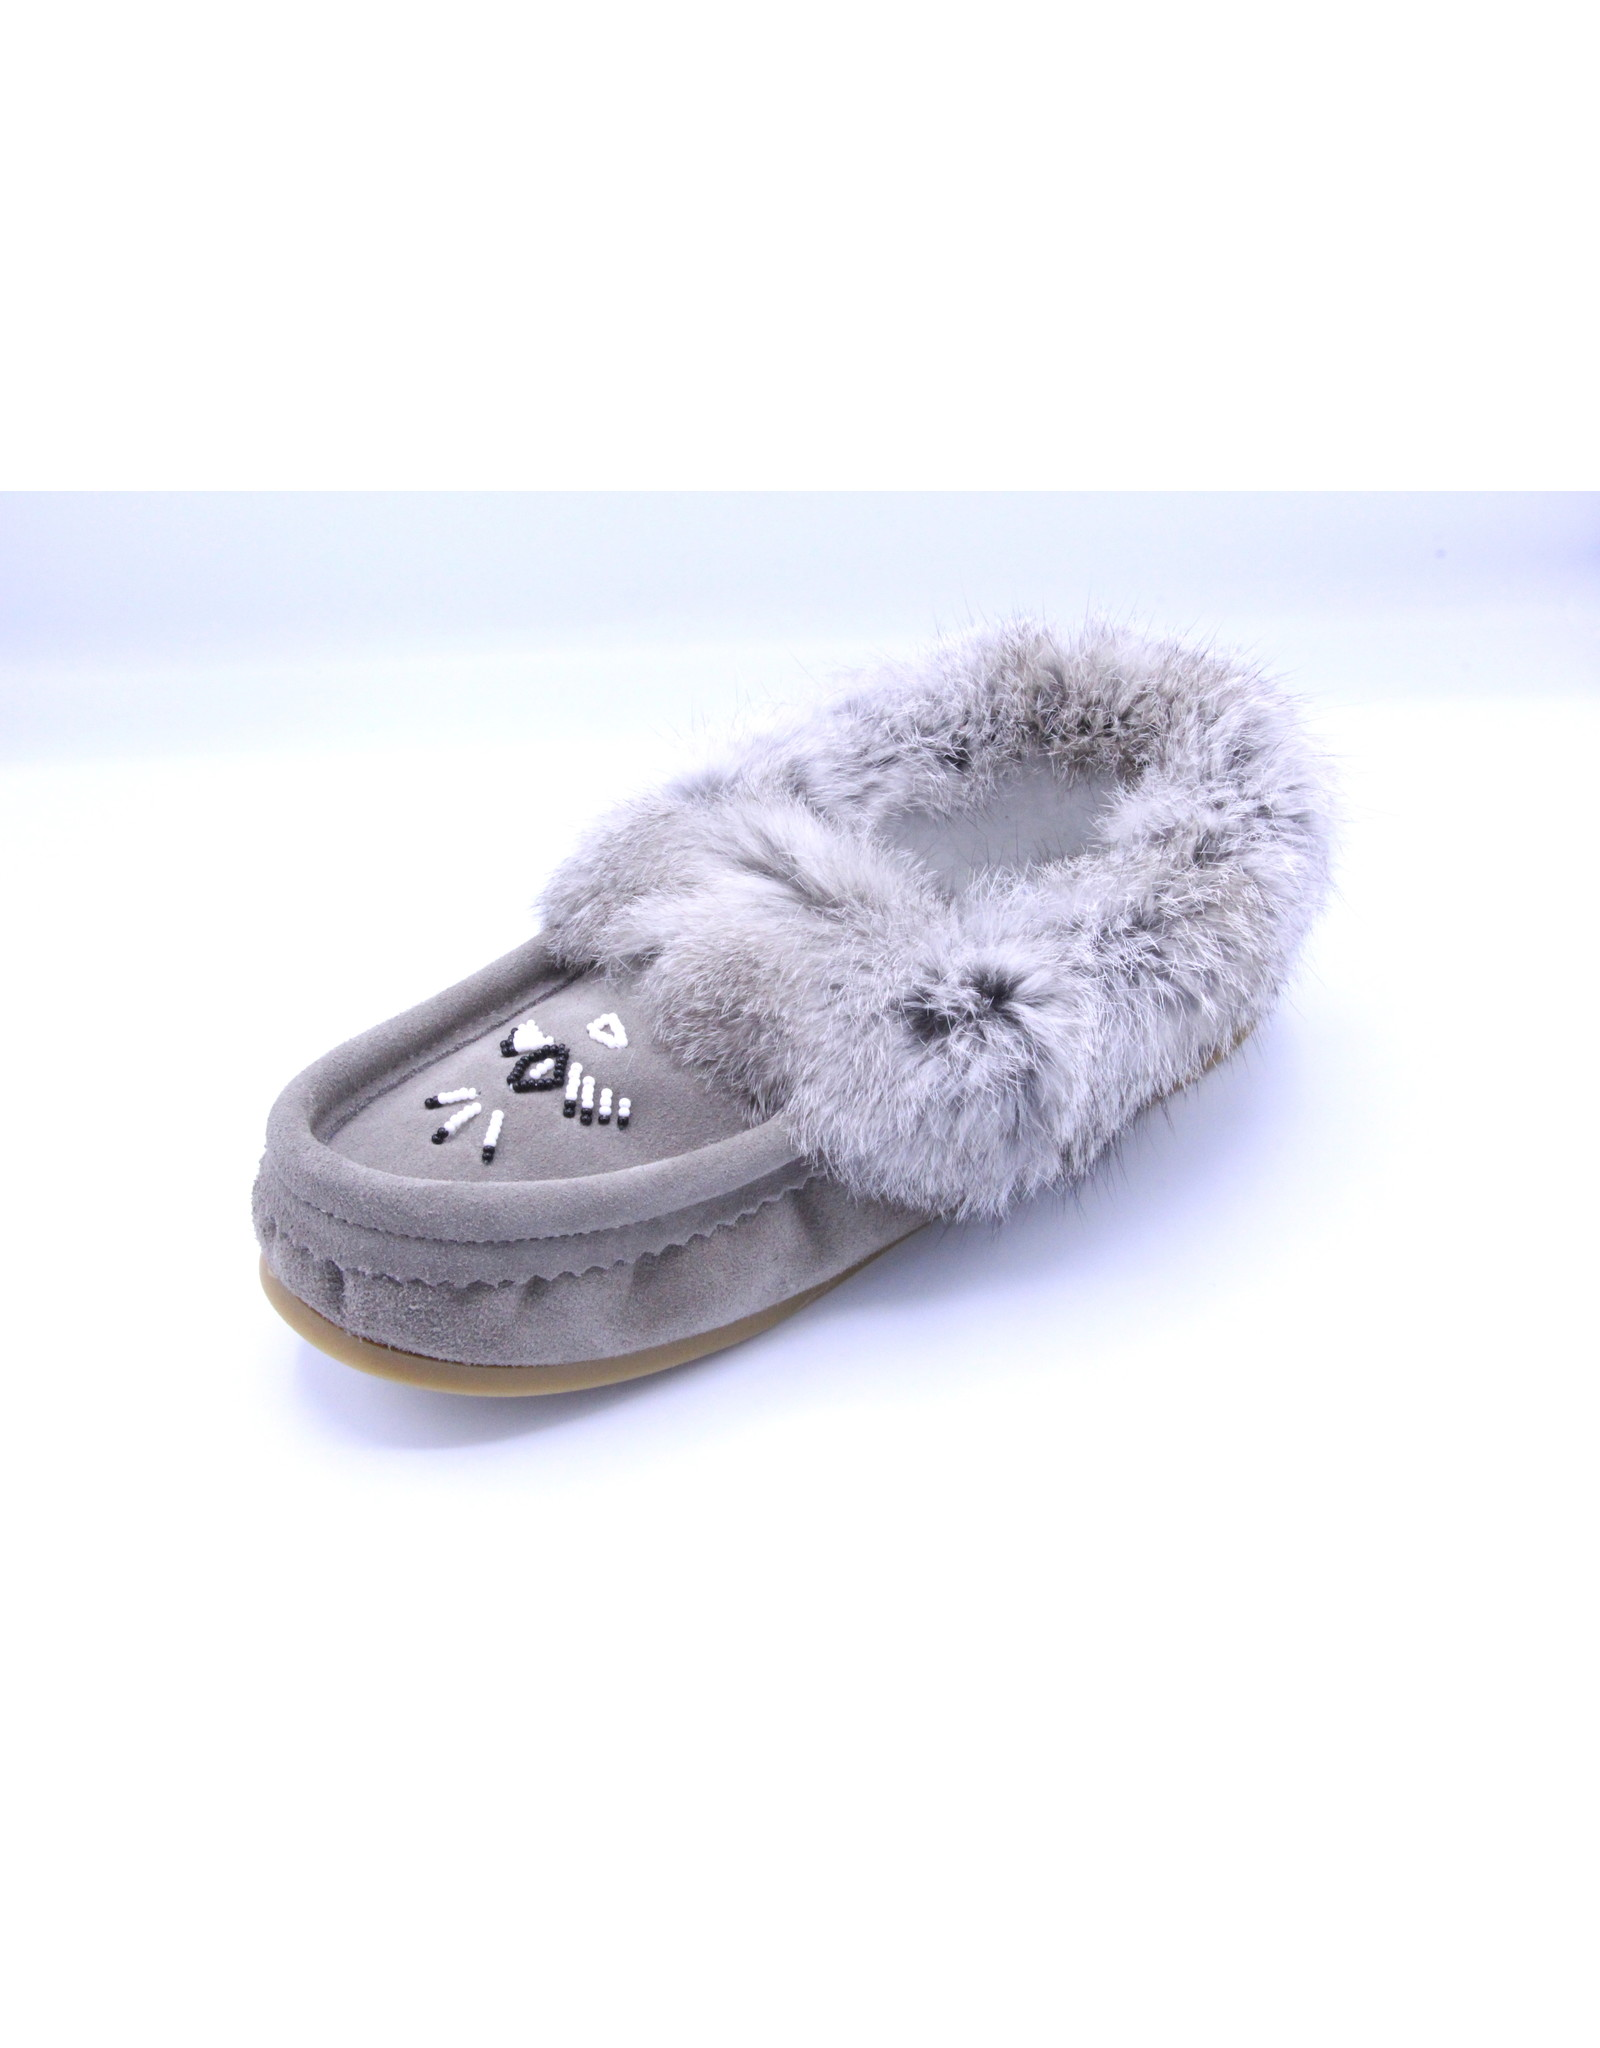 Ladies Grey Suede Fur Moccasin Slipper with Sole - 13660L